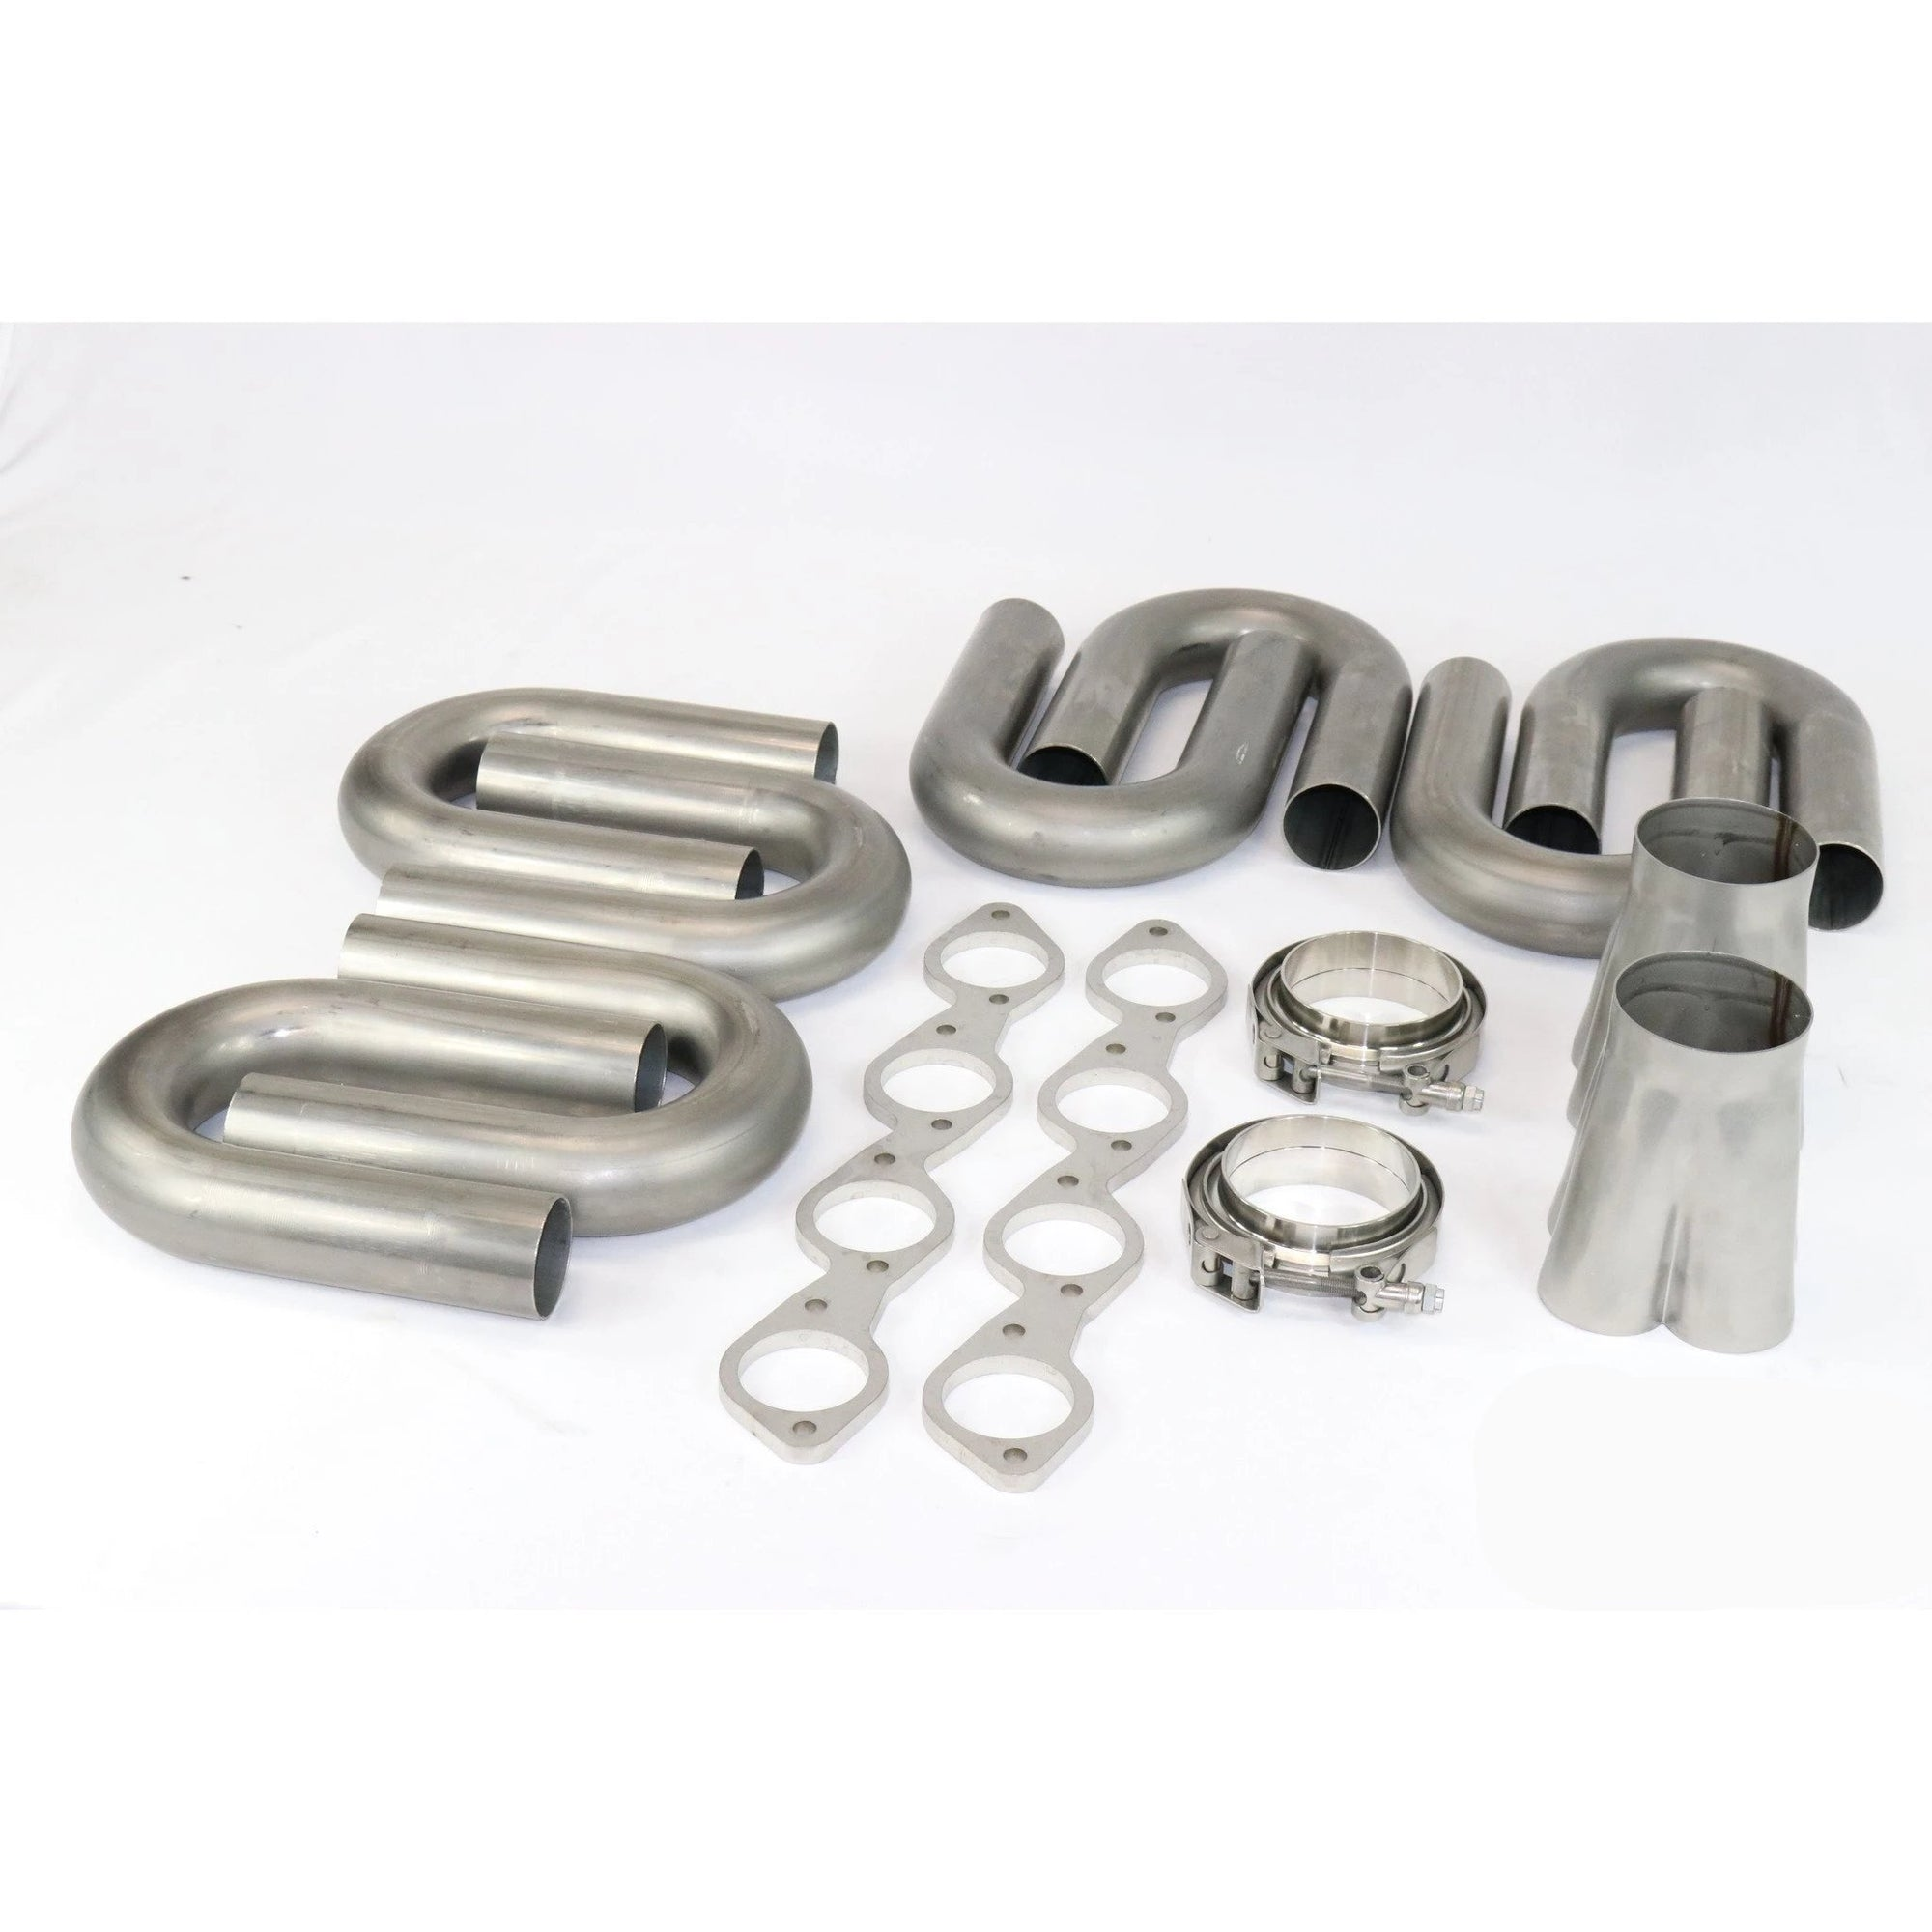 "Big Block Chevy Stainless Turbo Header Build Kit 2.250 to 3.5"" Collector - Motion Raceworks"